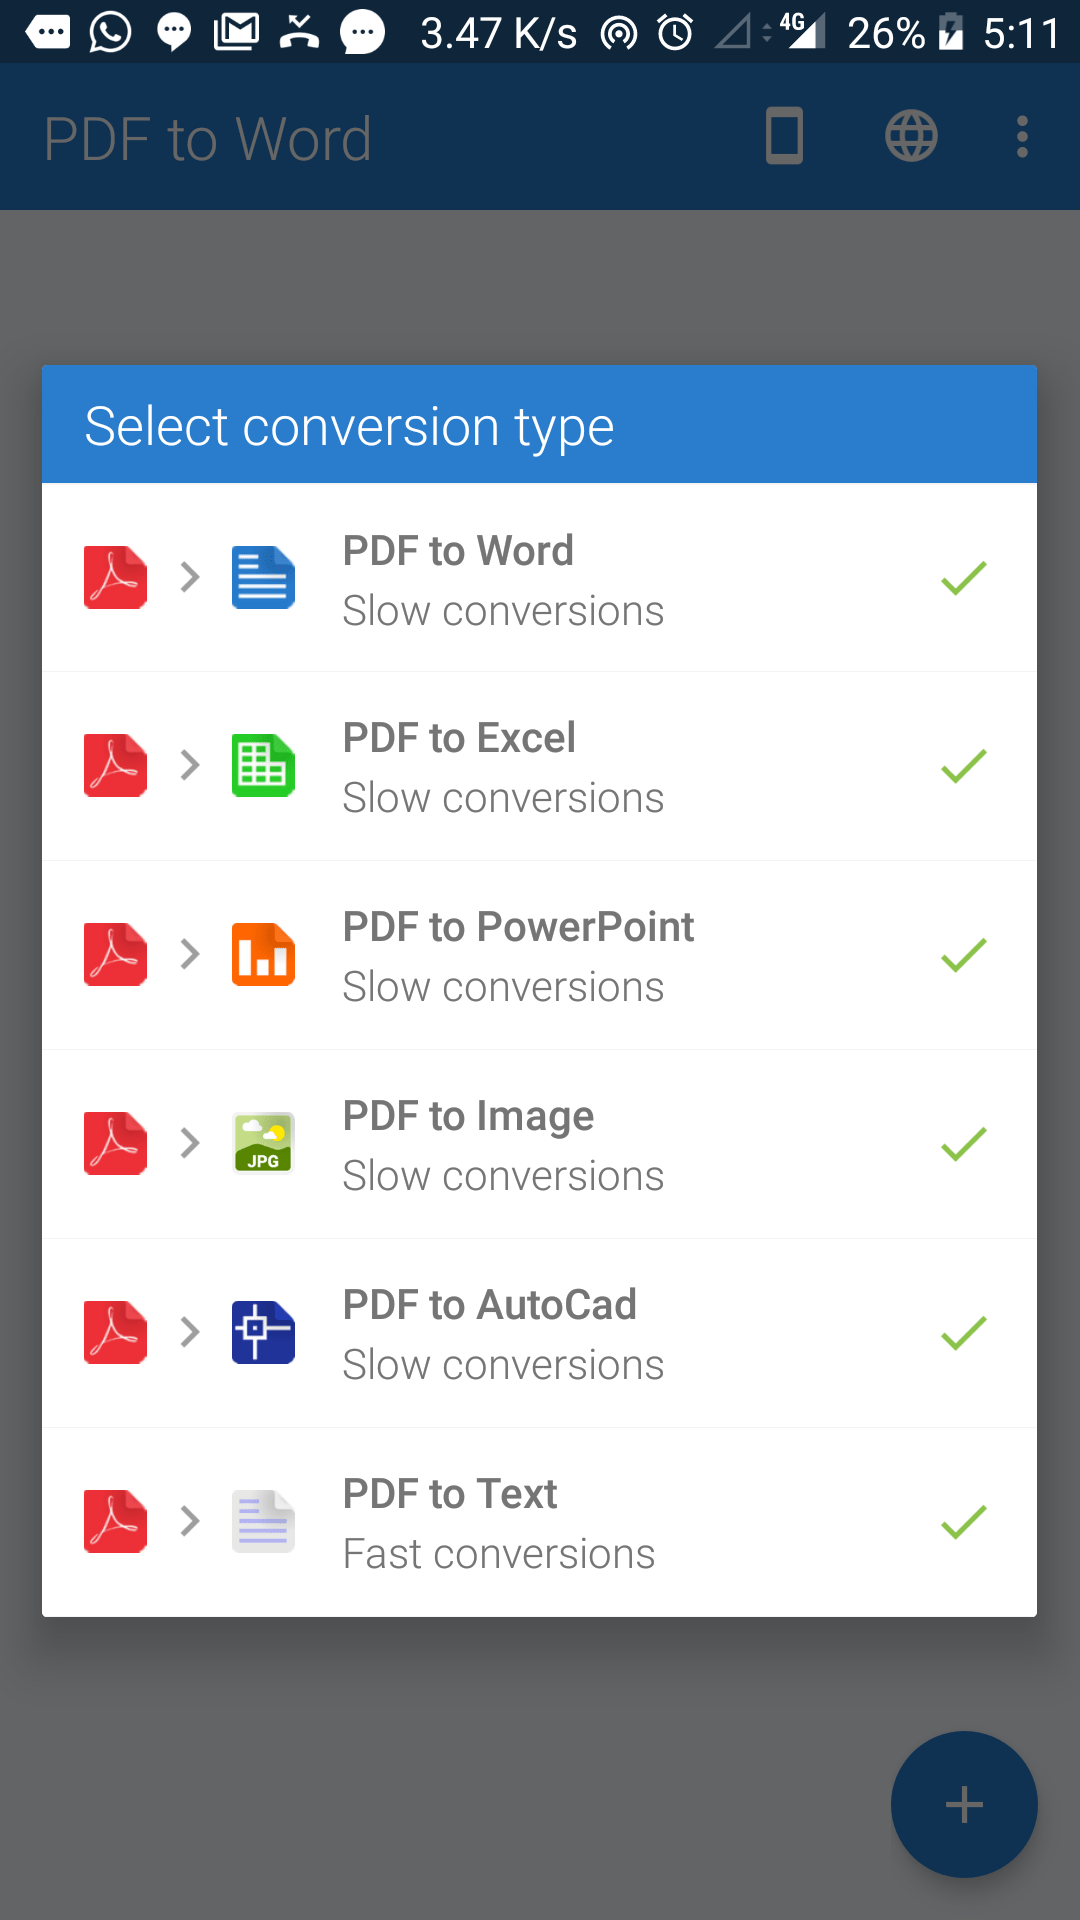 Android PDF to Word conversion types